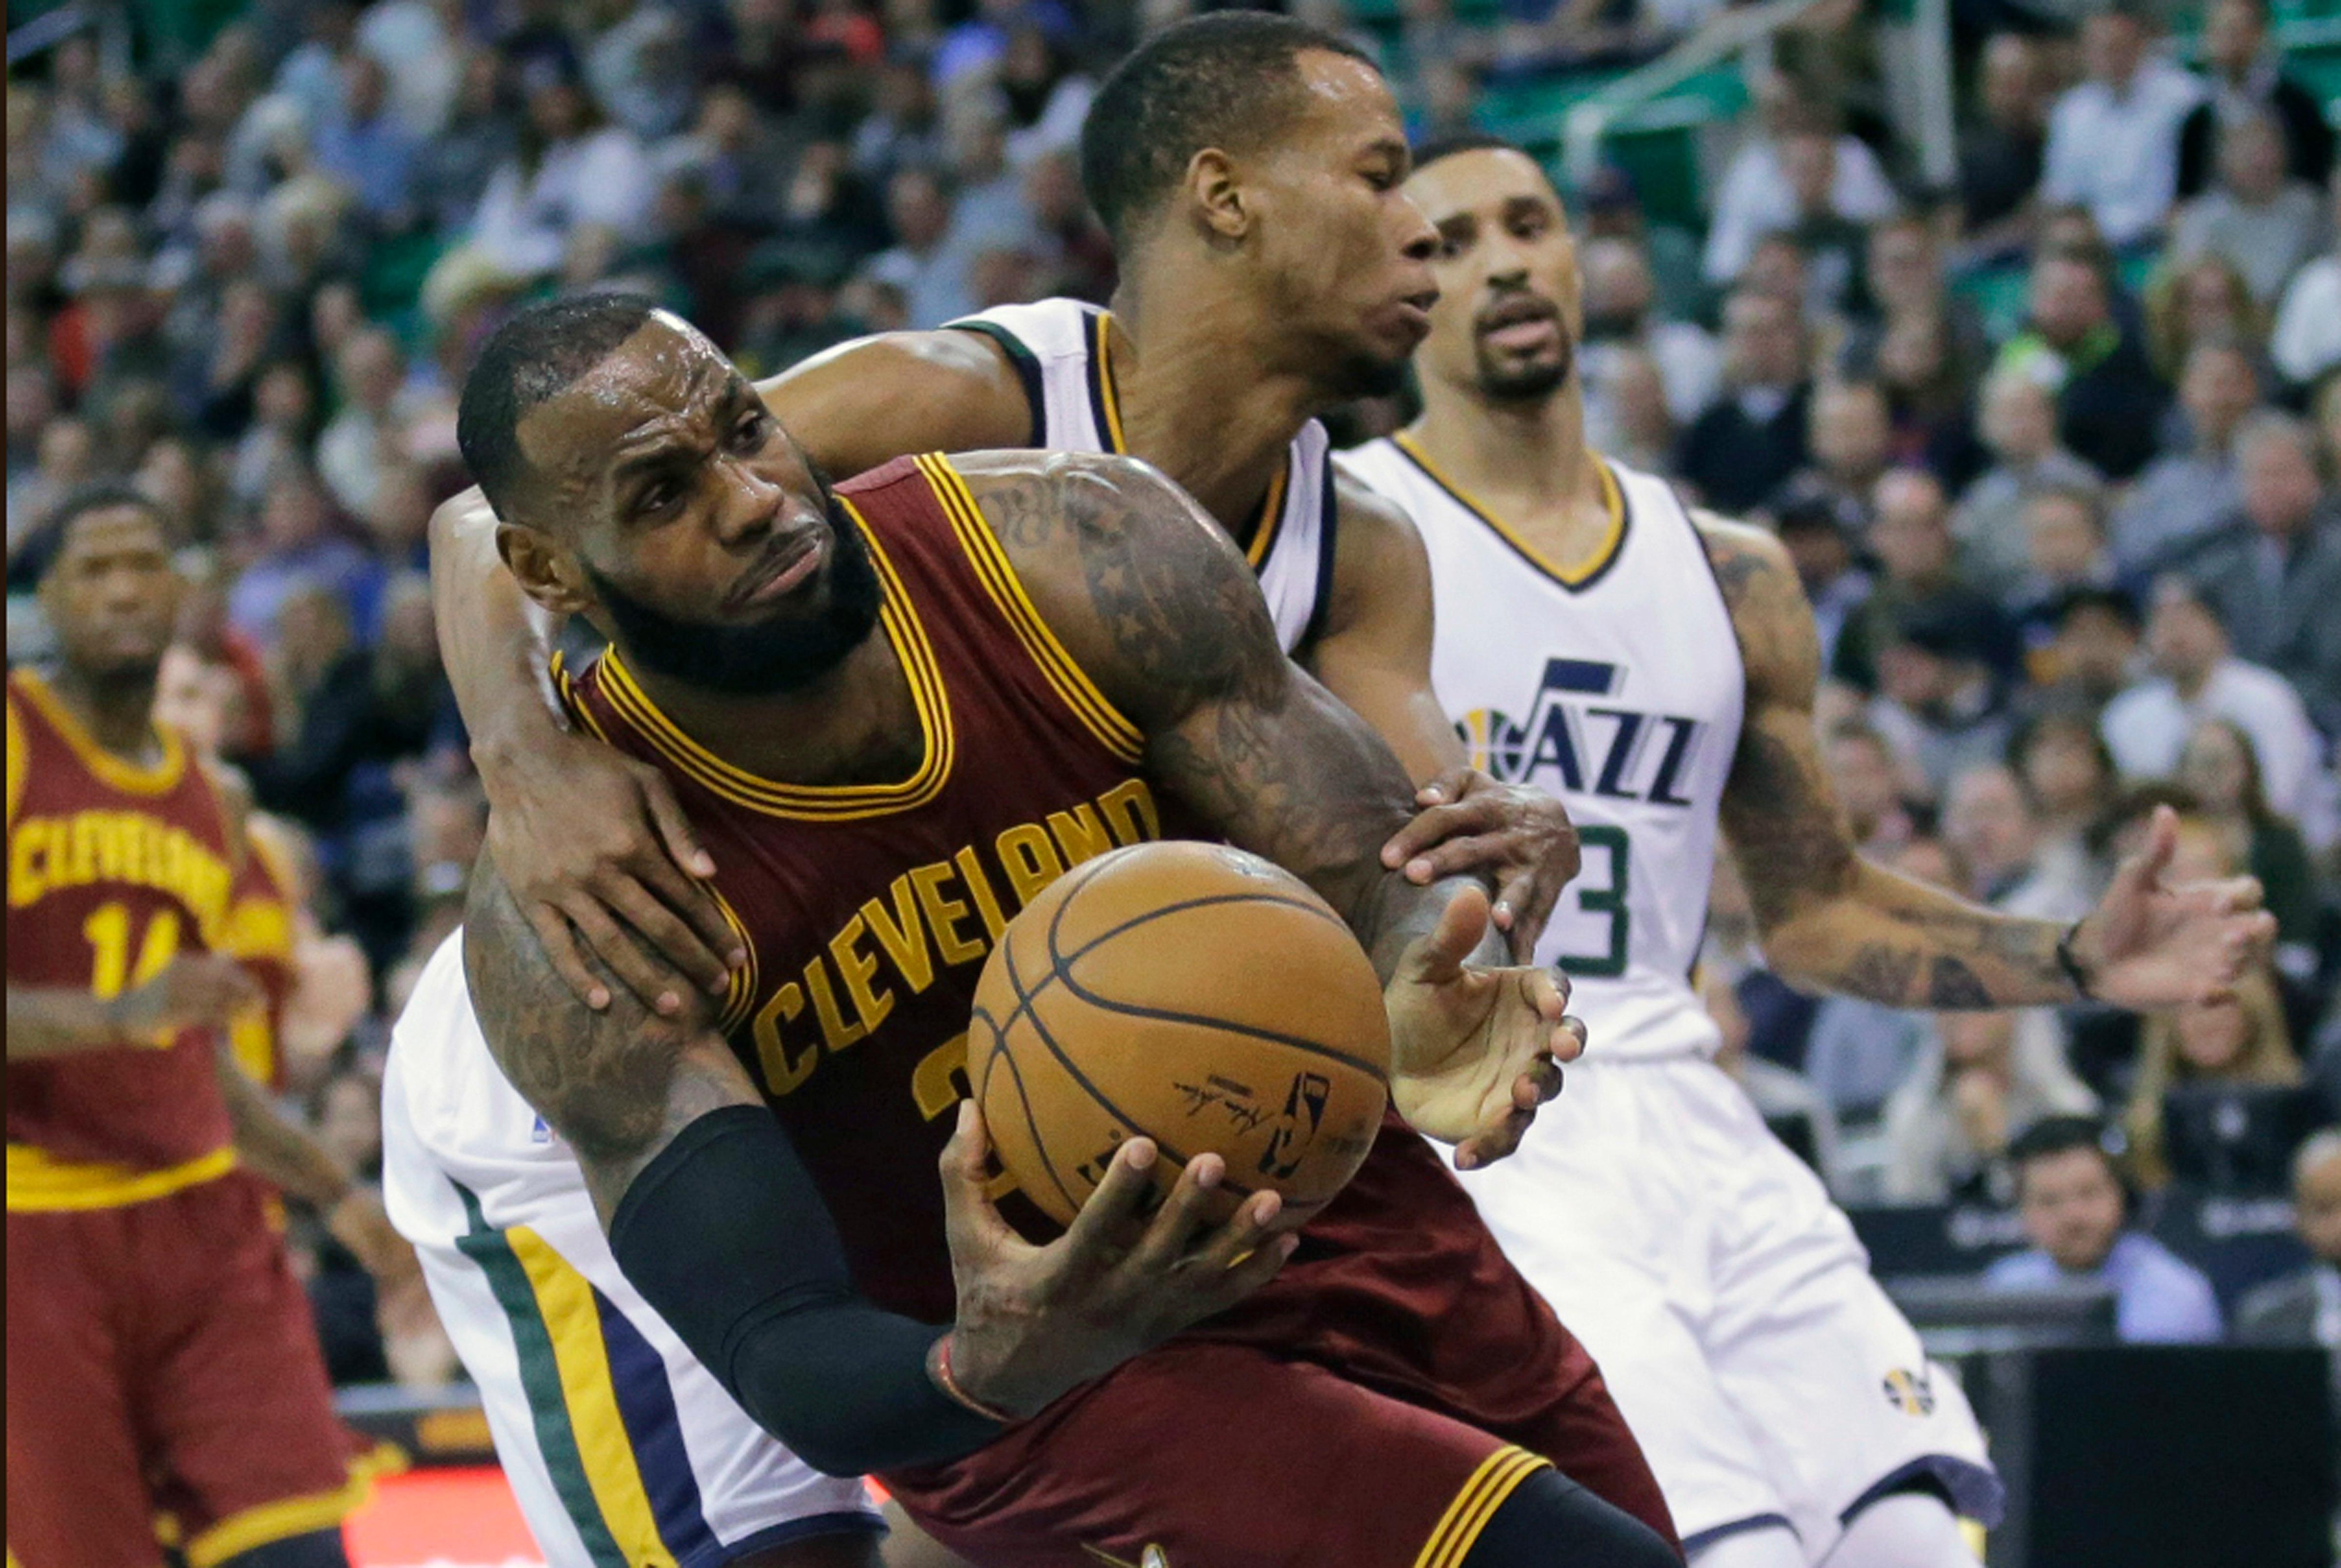 Utah Jazz guard Rodney Hood, rear, fouls Cleveland Cavaliers forward LeBron James, left, as he goes to the basket in the first half during an NBA basketball game Tuesday, Jan. 10, 2017, in Salt Lake City. (AP Photo/Rick Bowmer)